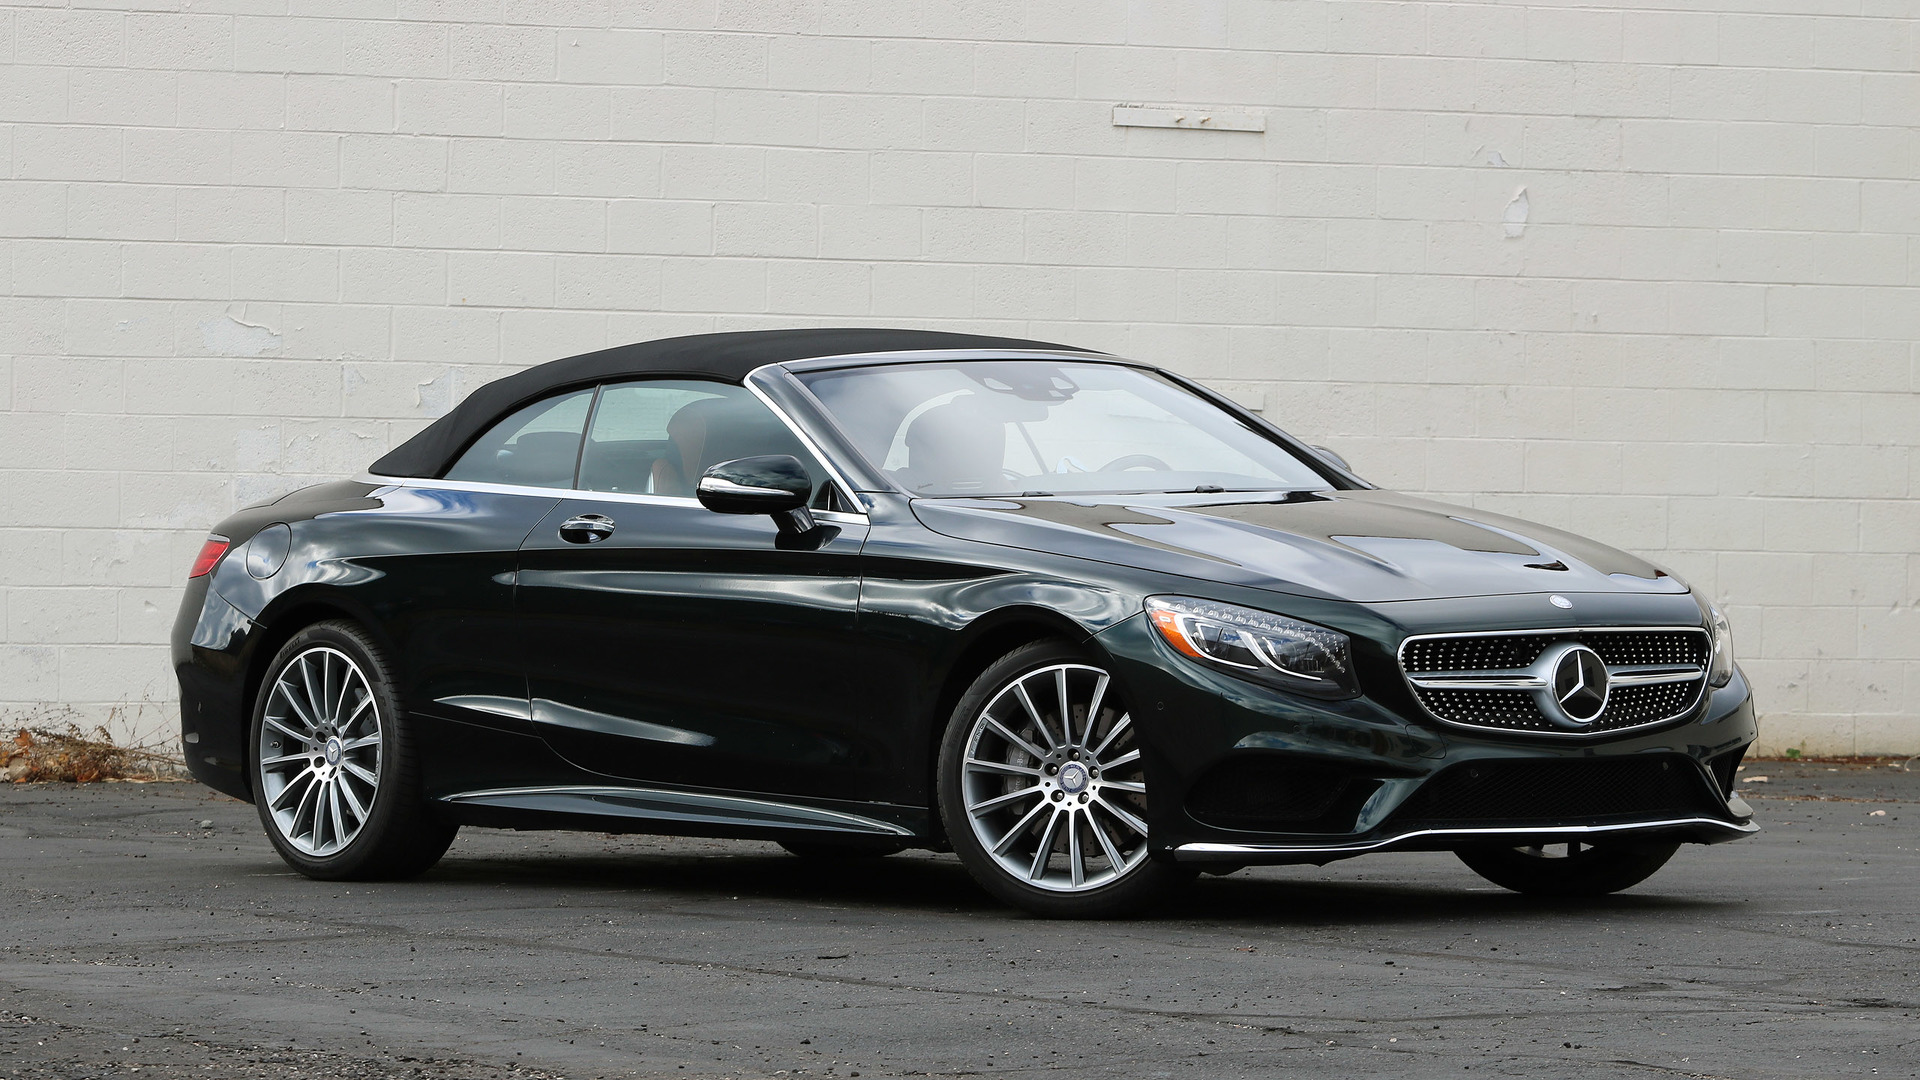 2017 Mercedes Benz S550 Cabriolet Review All The Luxury You